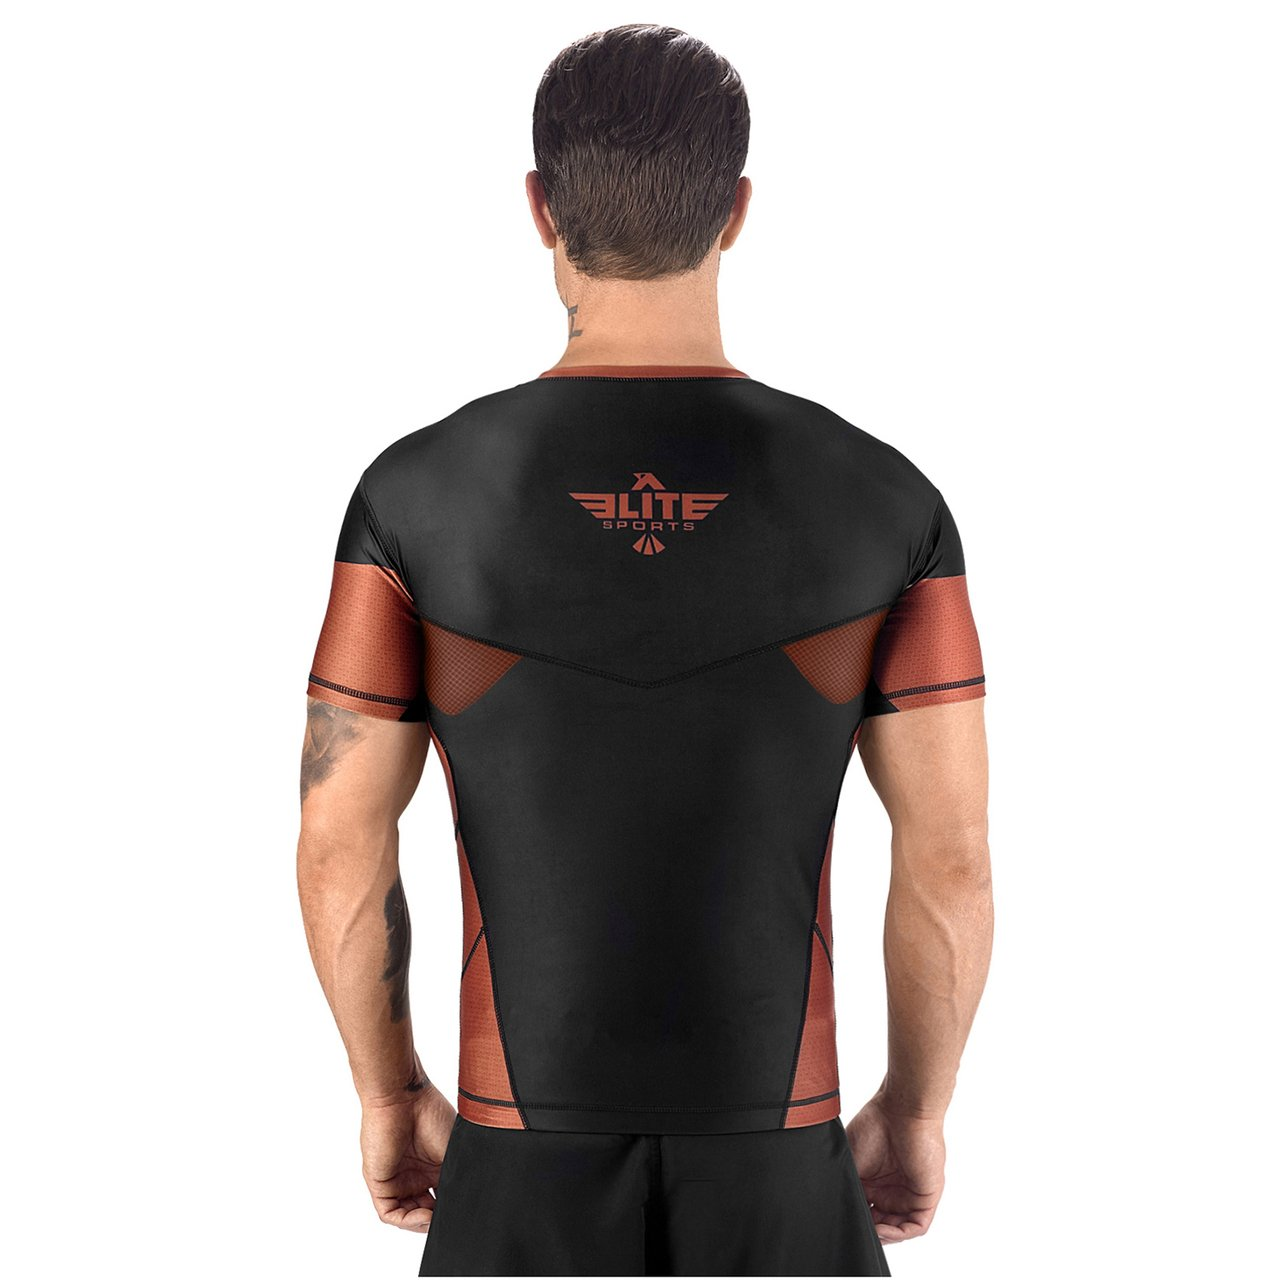 Load image into Gallery viewer, Elite Sports Honey Comb Sublimation Black/Brown Short Sleeve Training Rash Guard